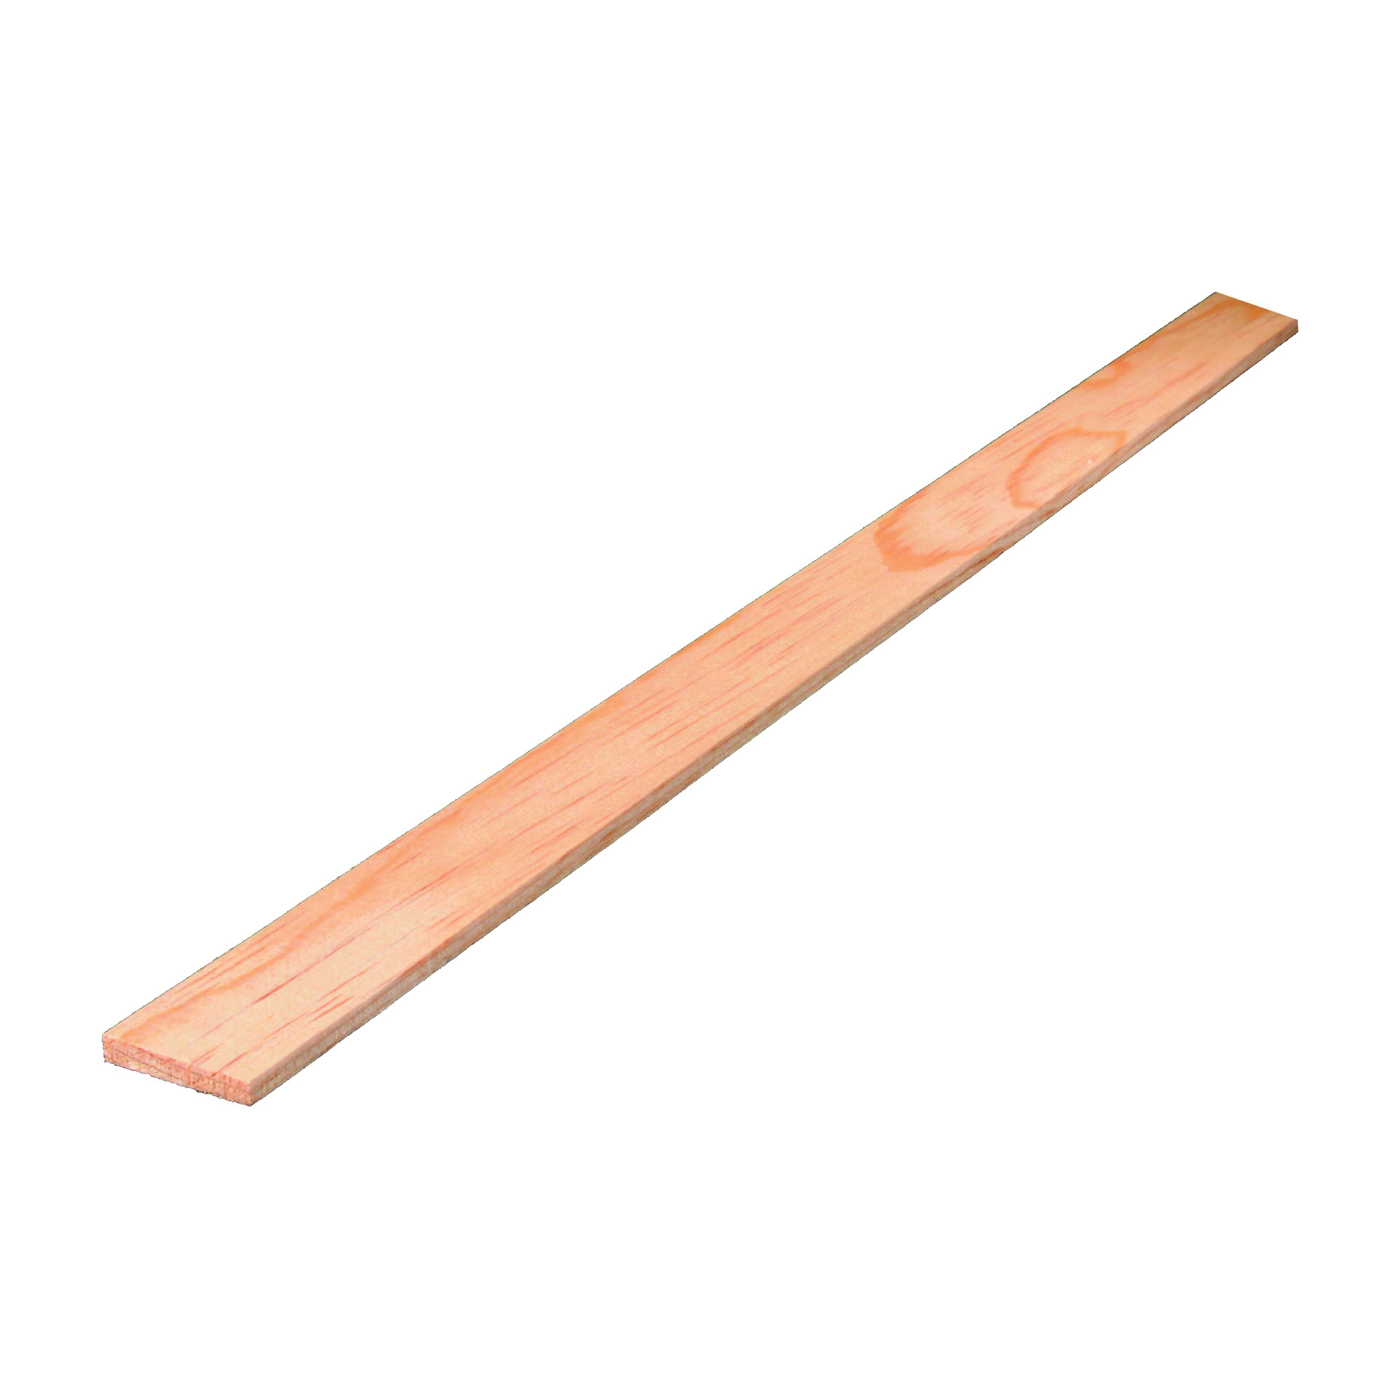 Picture of ALEXANDRIA Moulding 0W267-20096C1 Lattice Molding, 96 in L, 1-3/8 in W, Wood